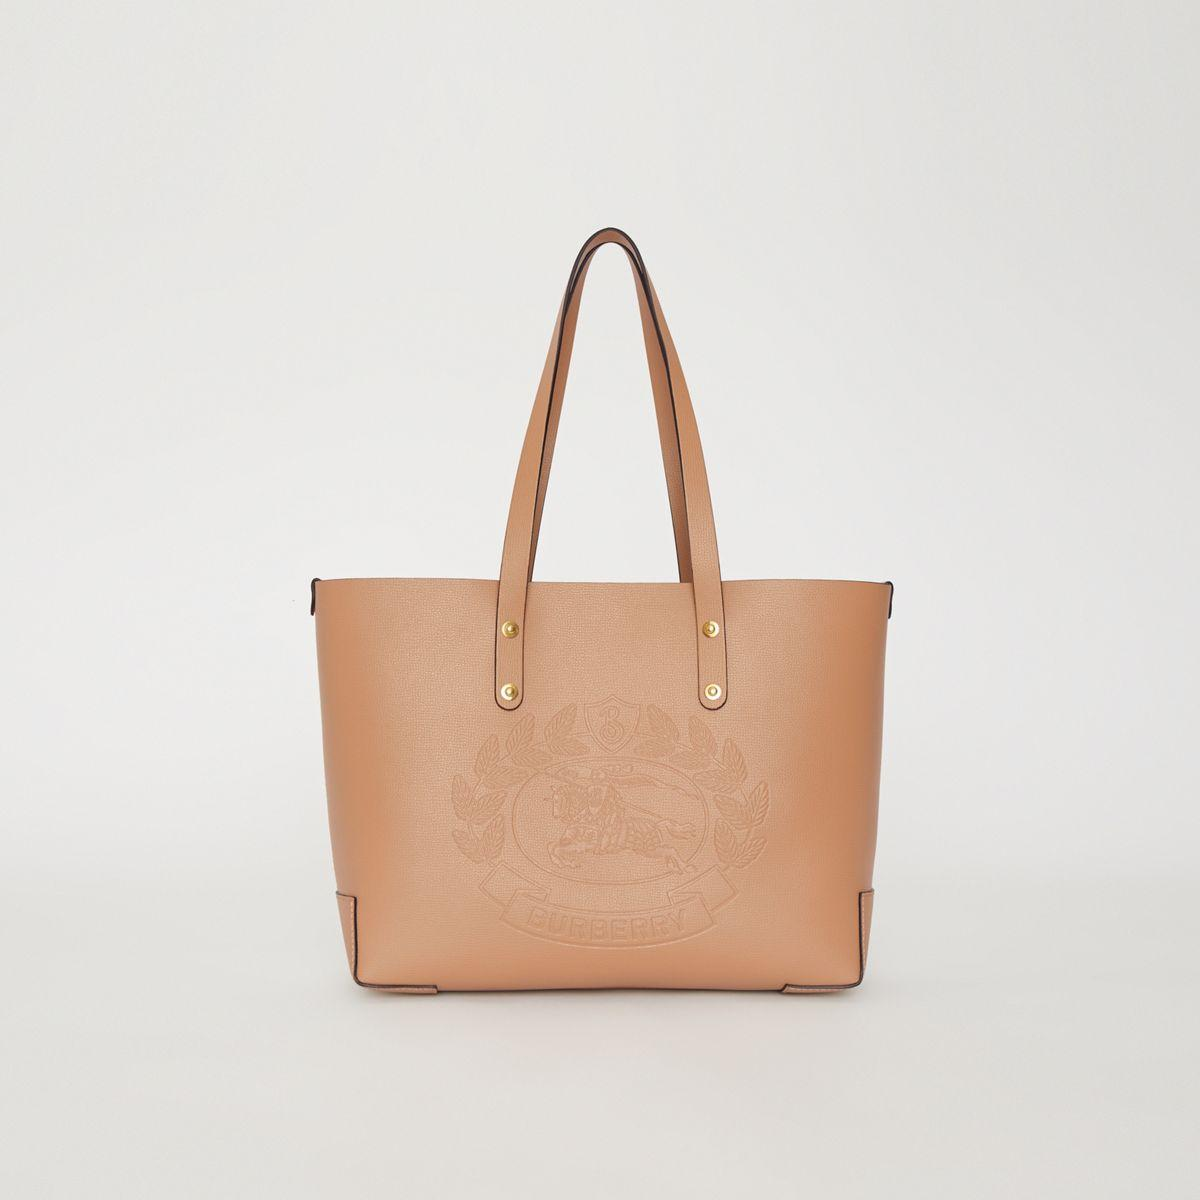 cbef290bce47 Burberry - Natural Small Embossed Crest Leather Tote - Lyst. View fullscreen